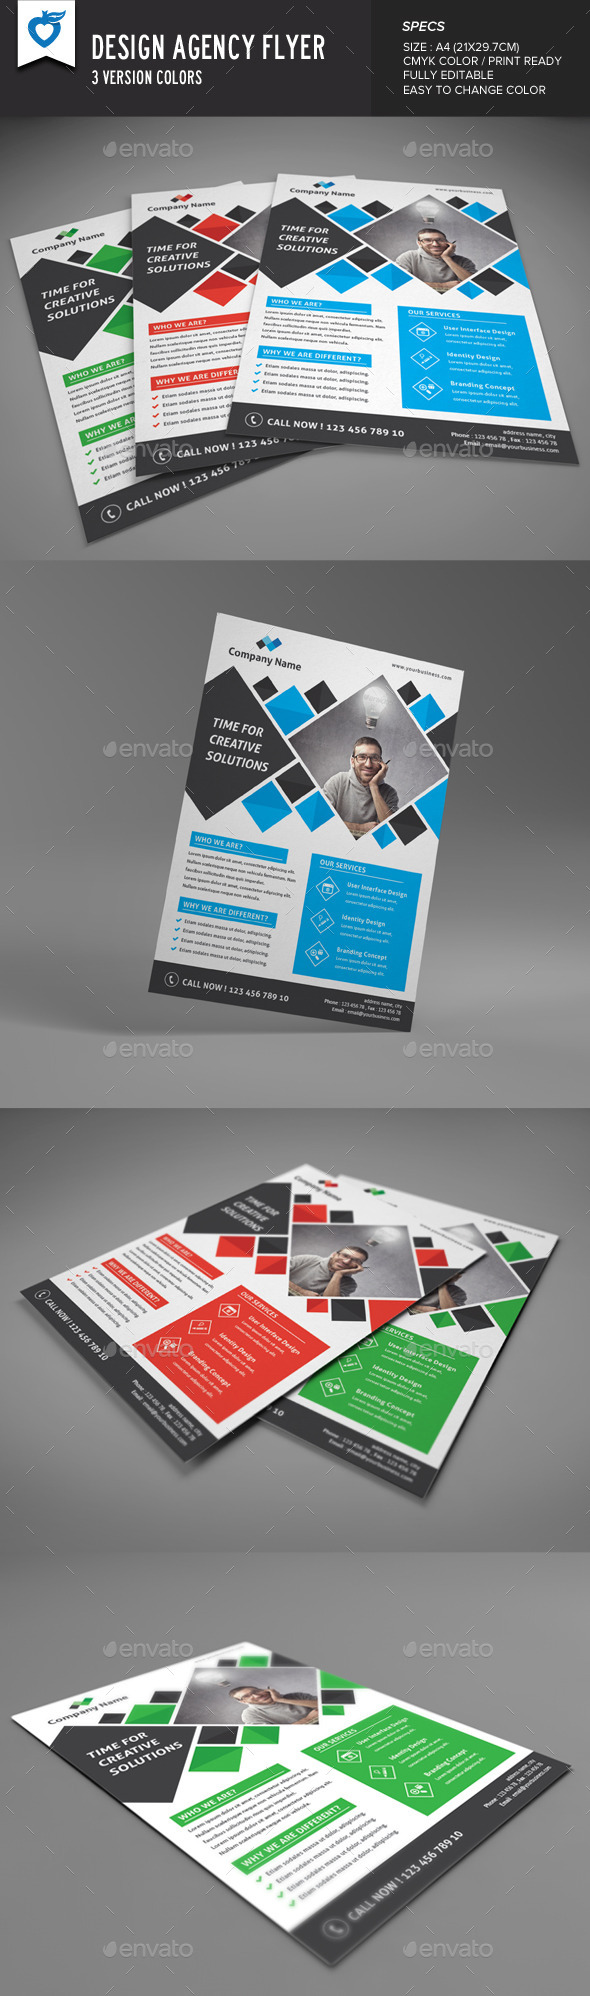 GraphicRiver Design Agency Flyer 9816464